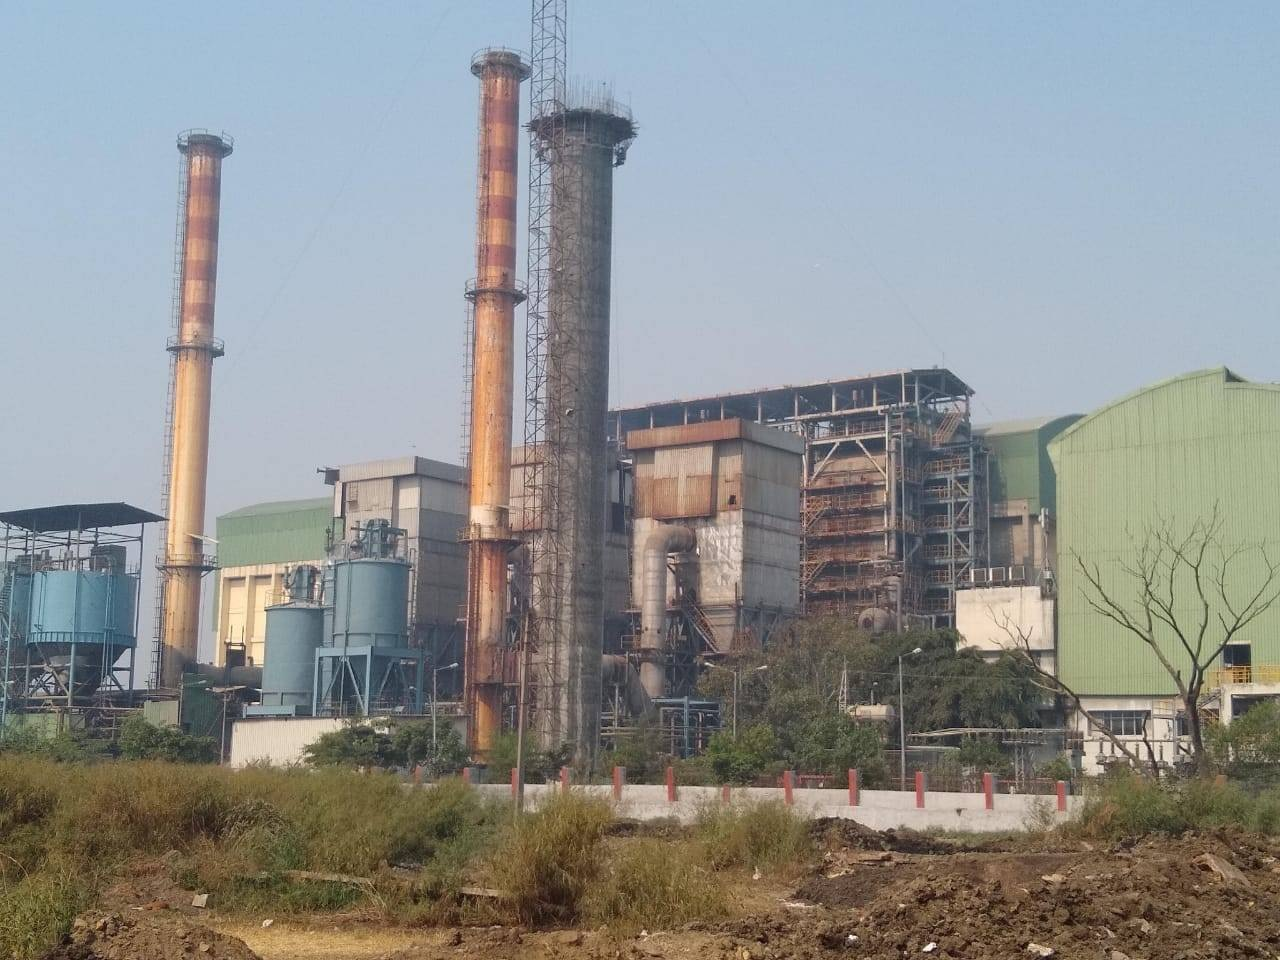 Waste-to-energy: Why a Rs 10,000 crore industry is facing issues